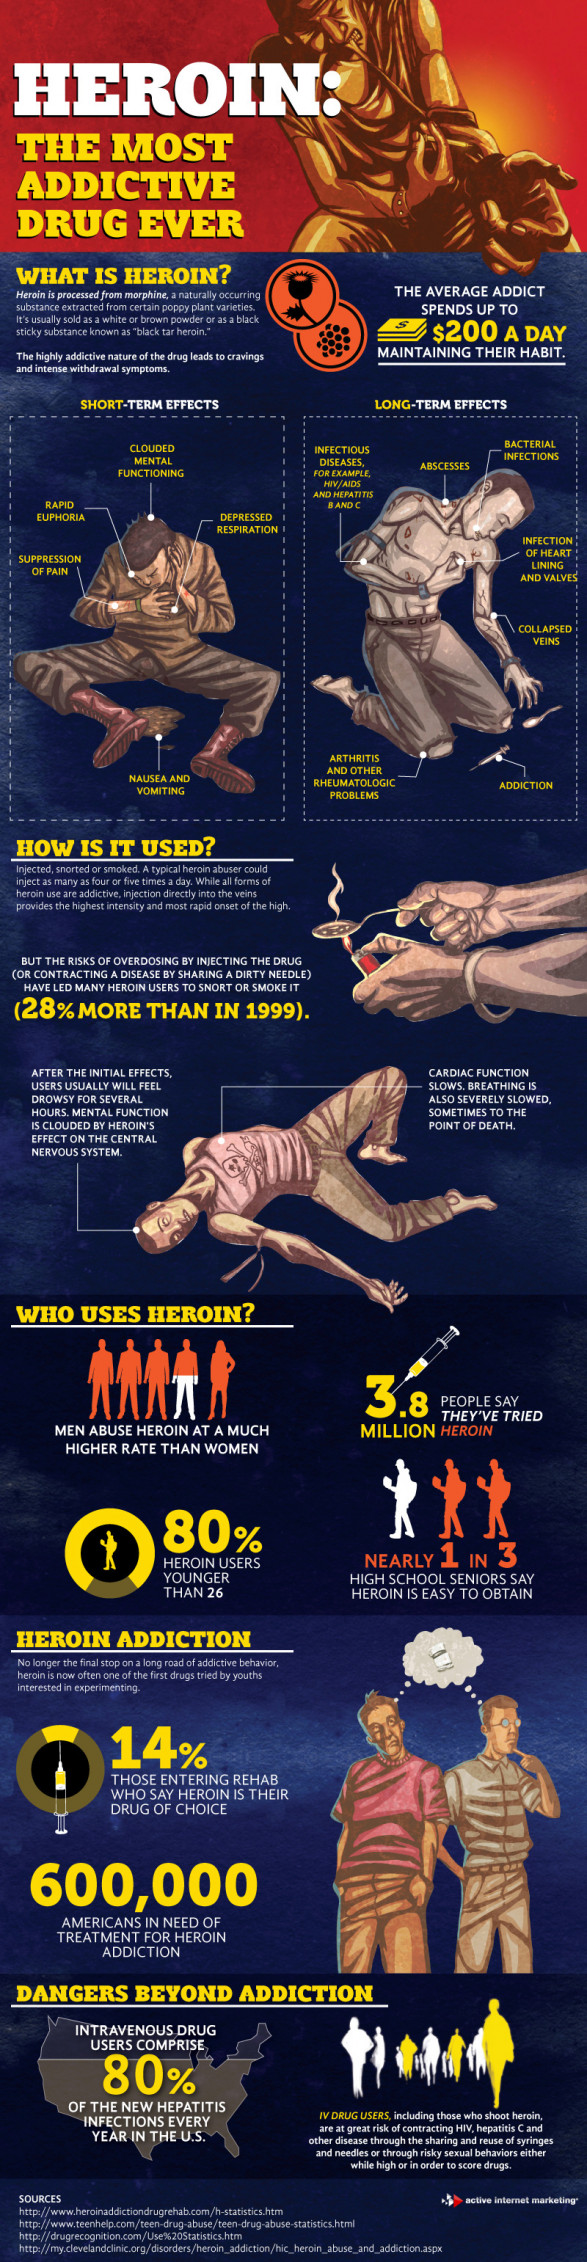 Heroin - The Most Addictive Drug Ever